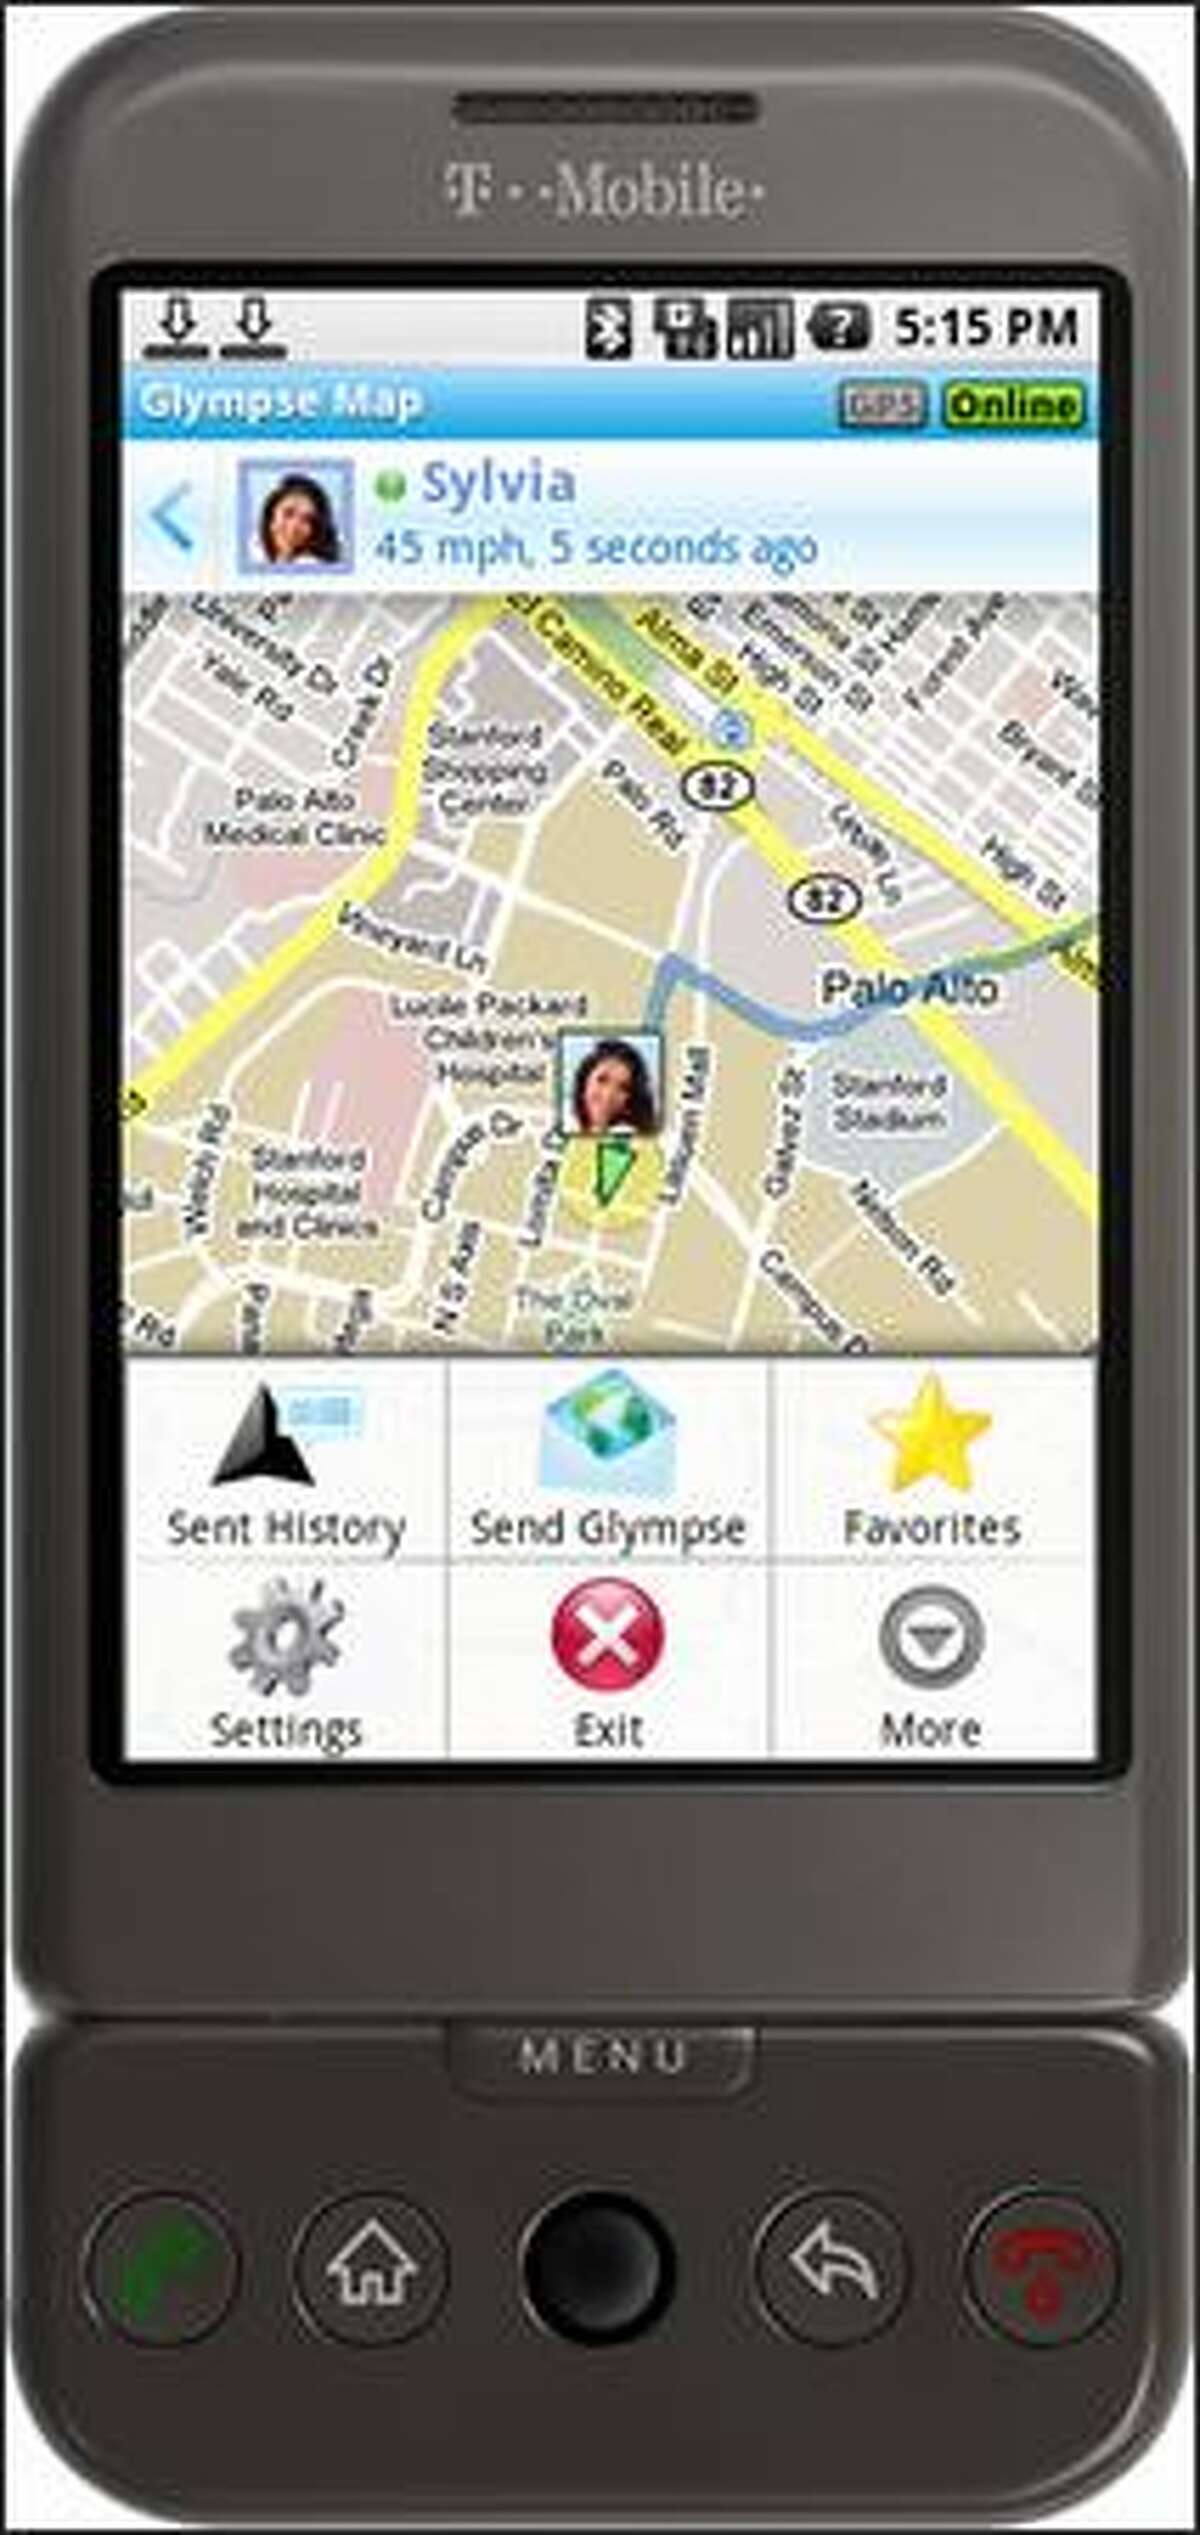 In this image provided by Glympse Inc., an rendering of what the Glympse application looks like on T-Mobile's G1 Android phone is shown. (AP Photo/Glympse Inc.)